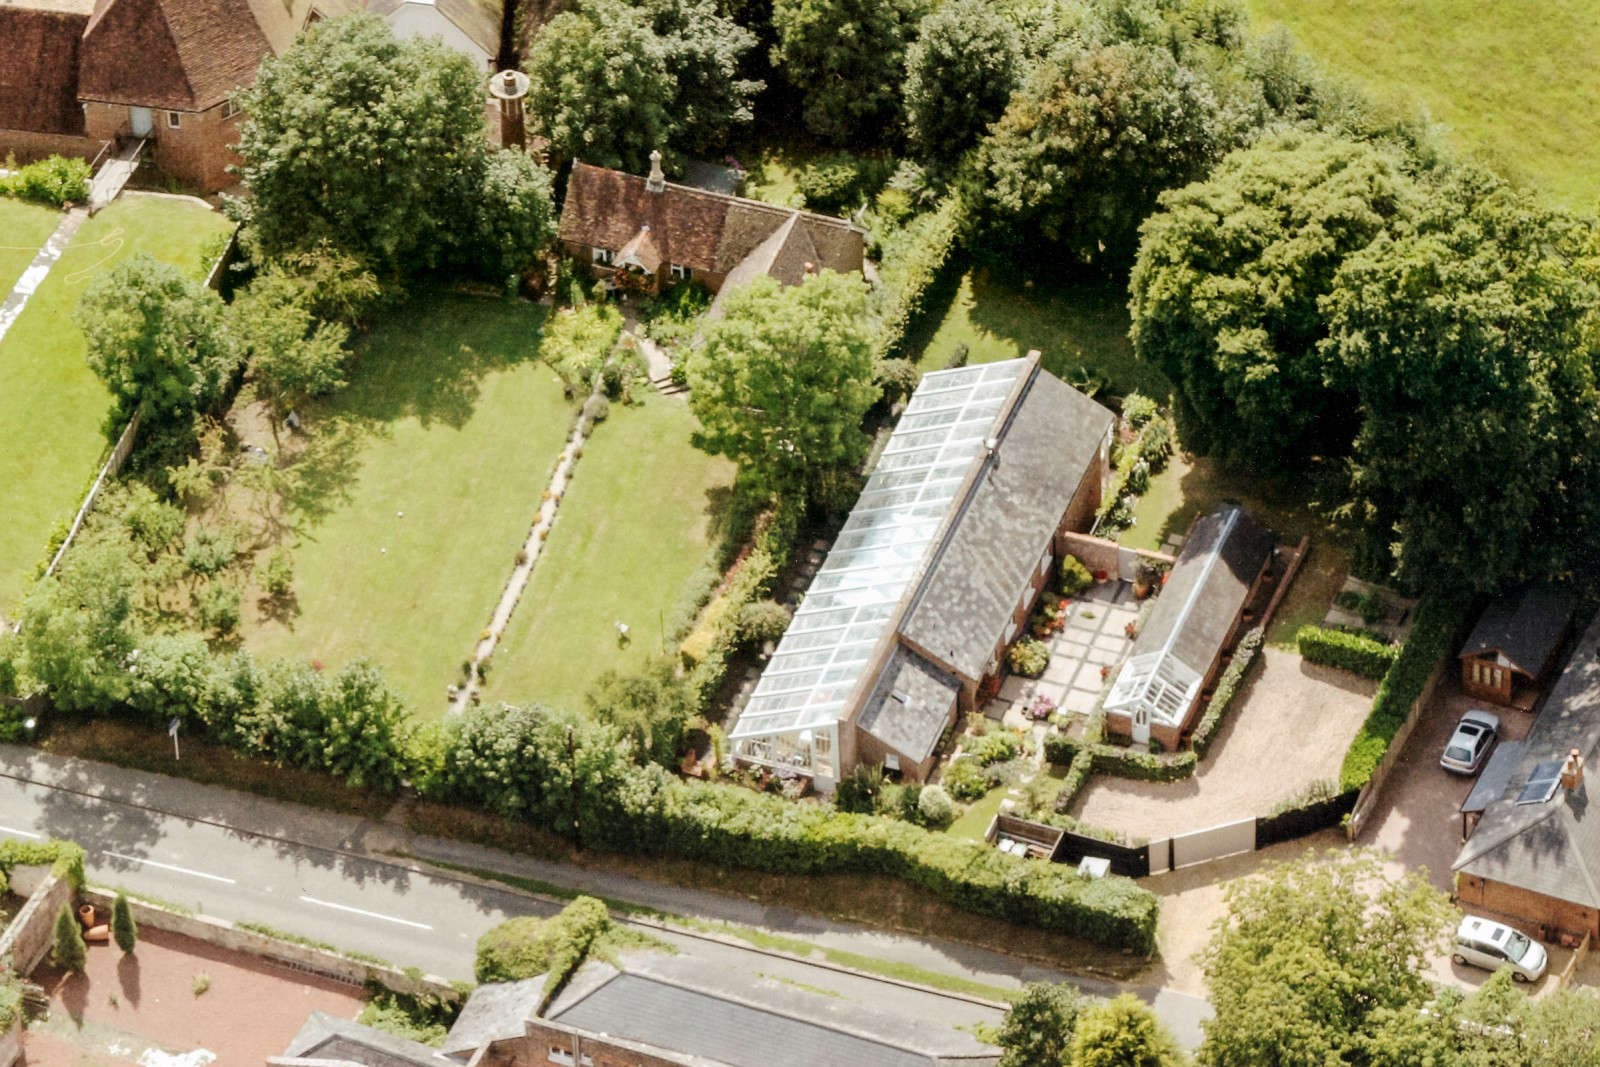 greenhouse-conversion-kent-themodernhouse-aerial-view-3